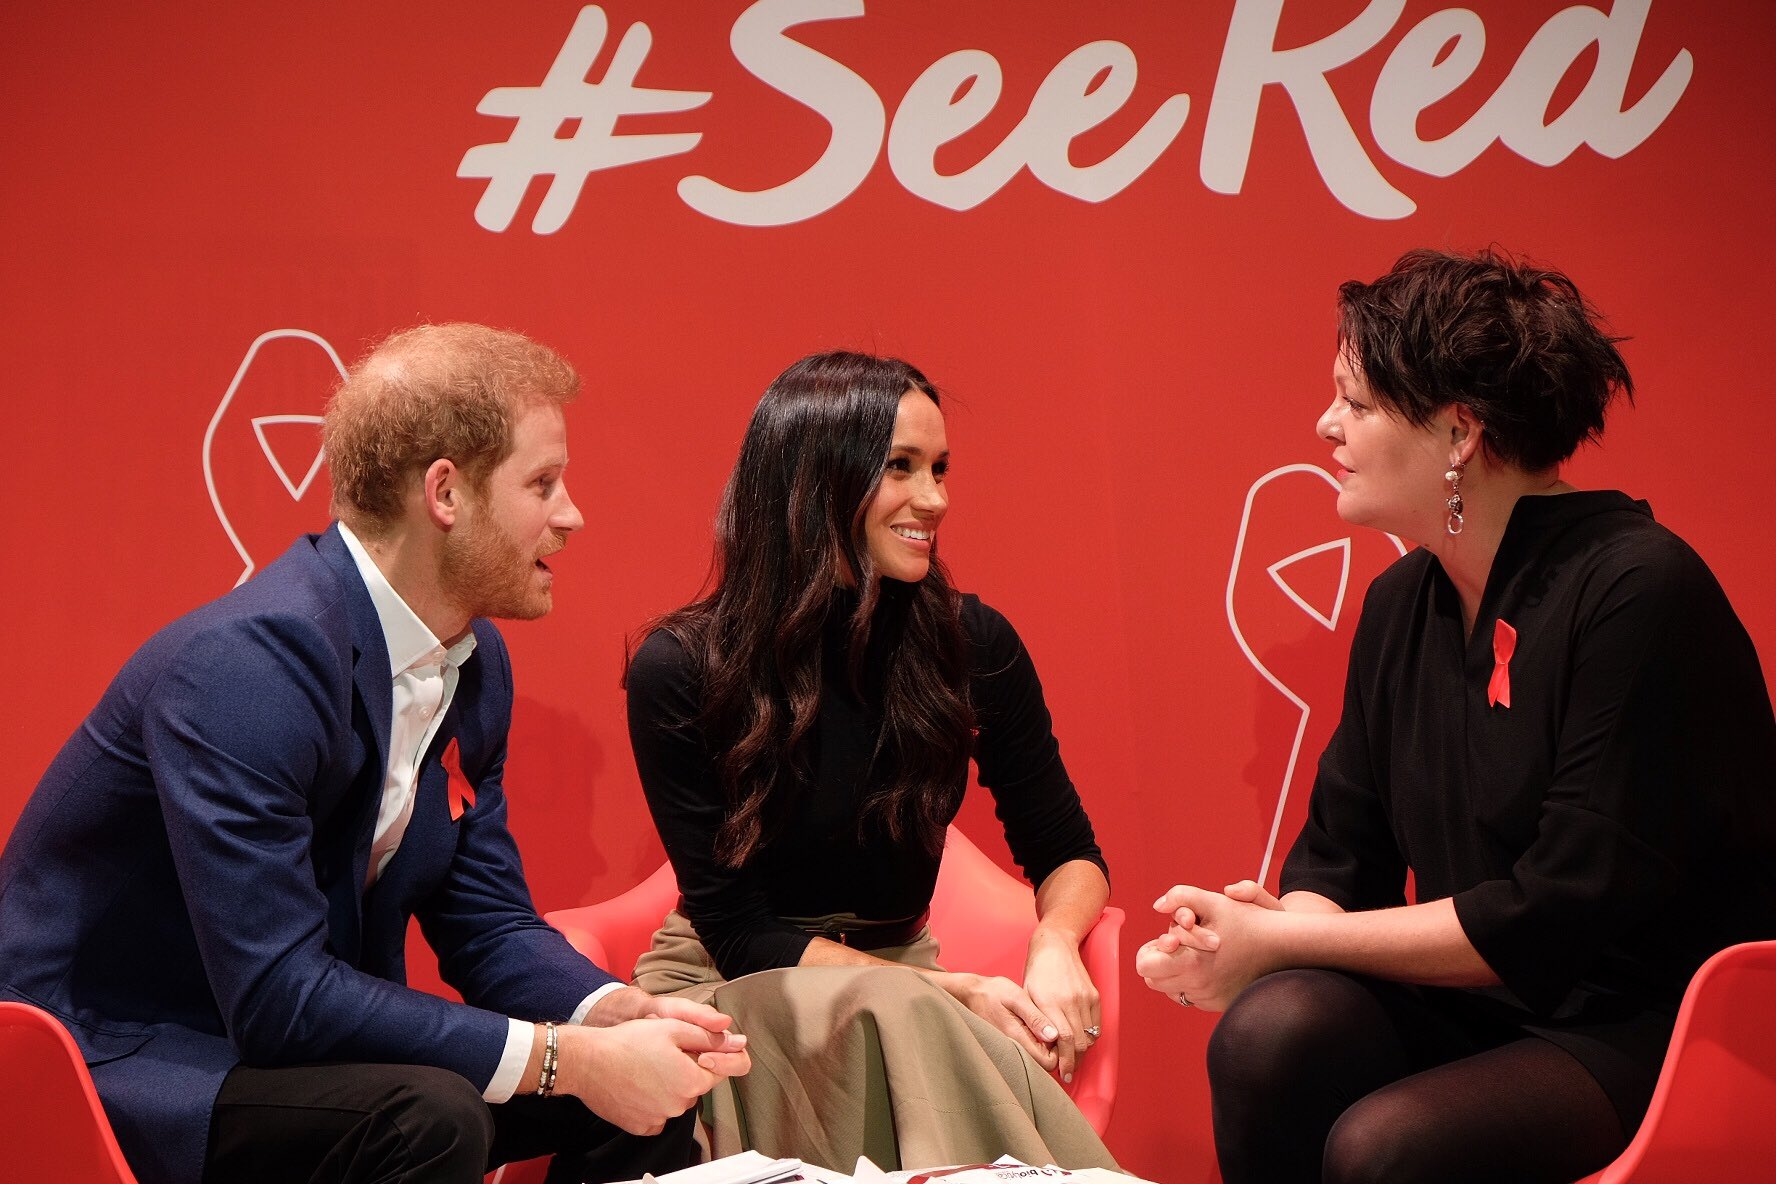 Prince Harry and Meghan Markle choose AIDS charity for first joint official visit - 图片 1